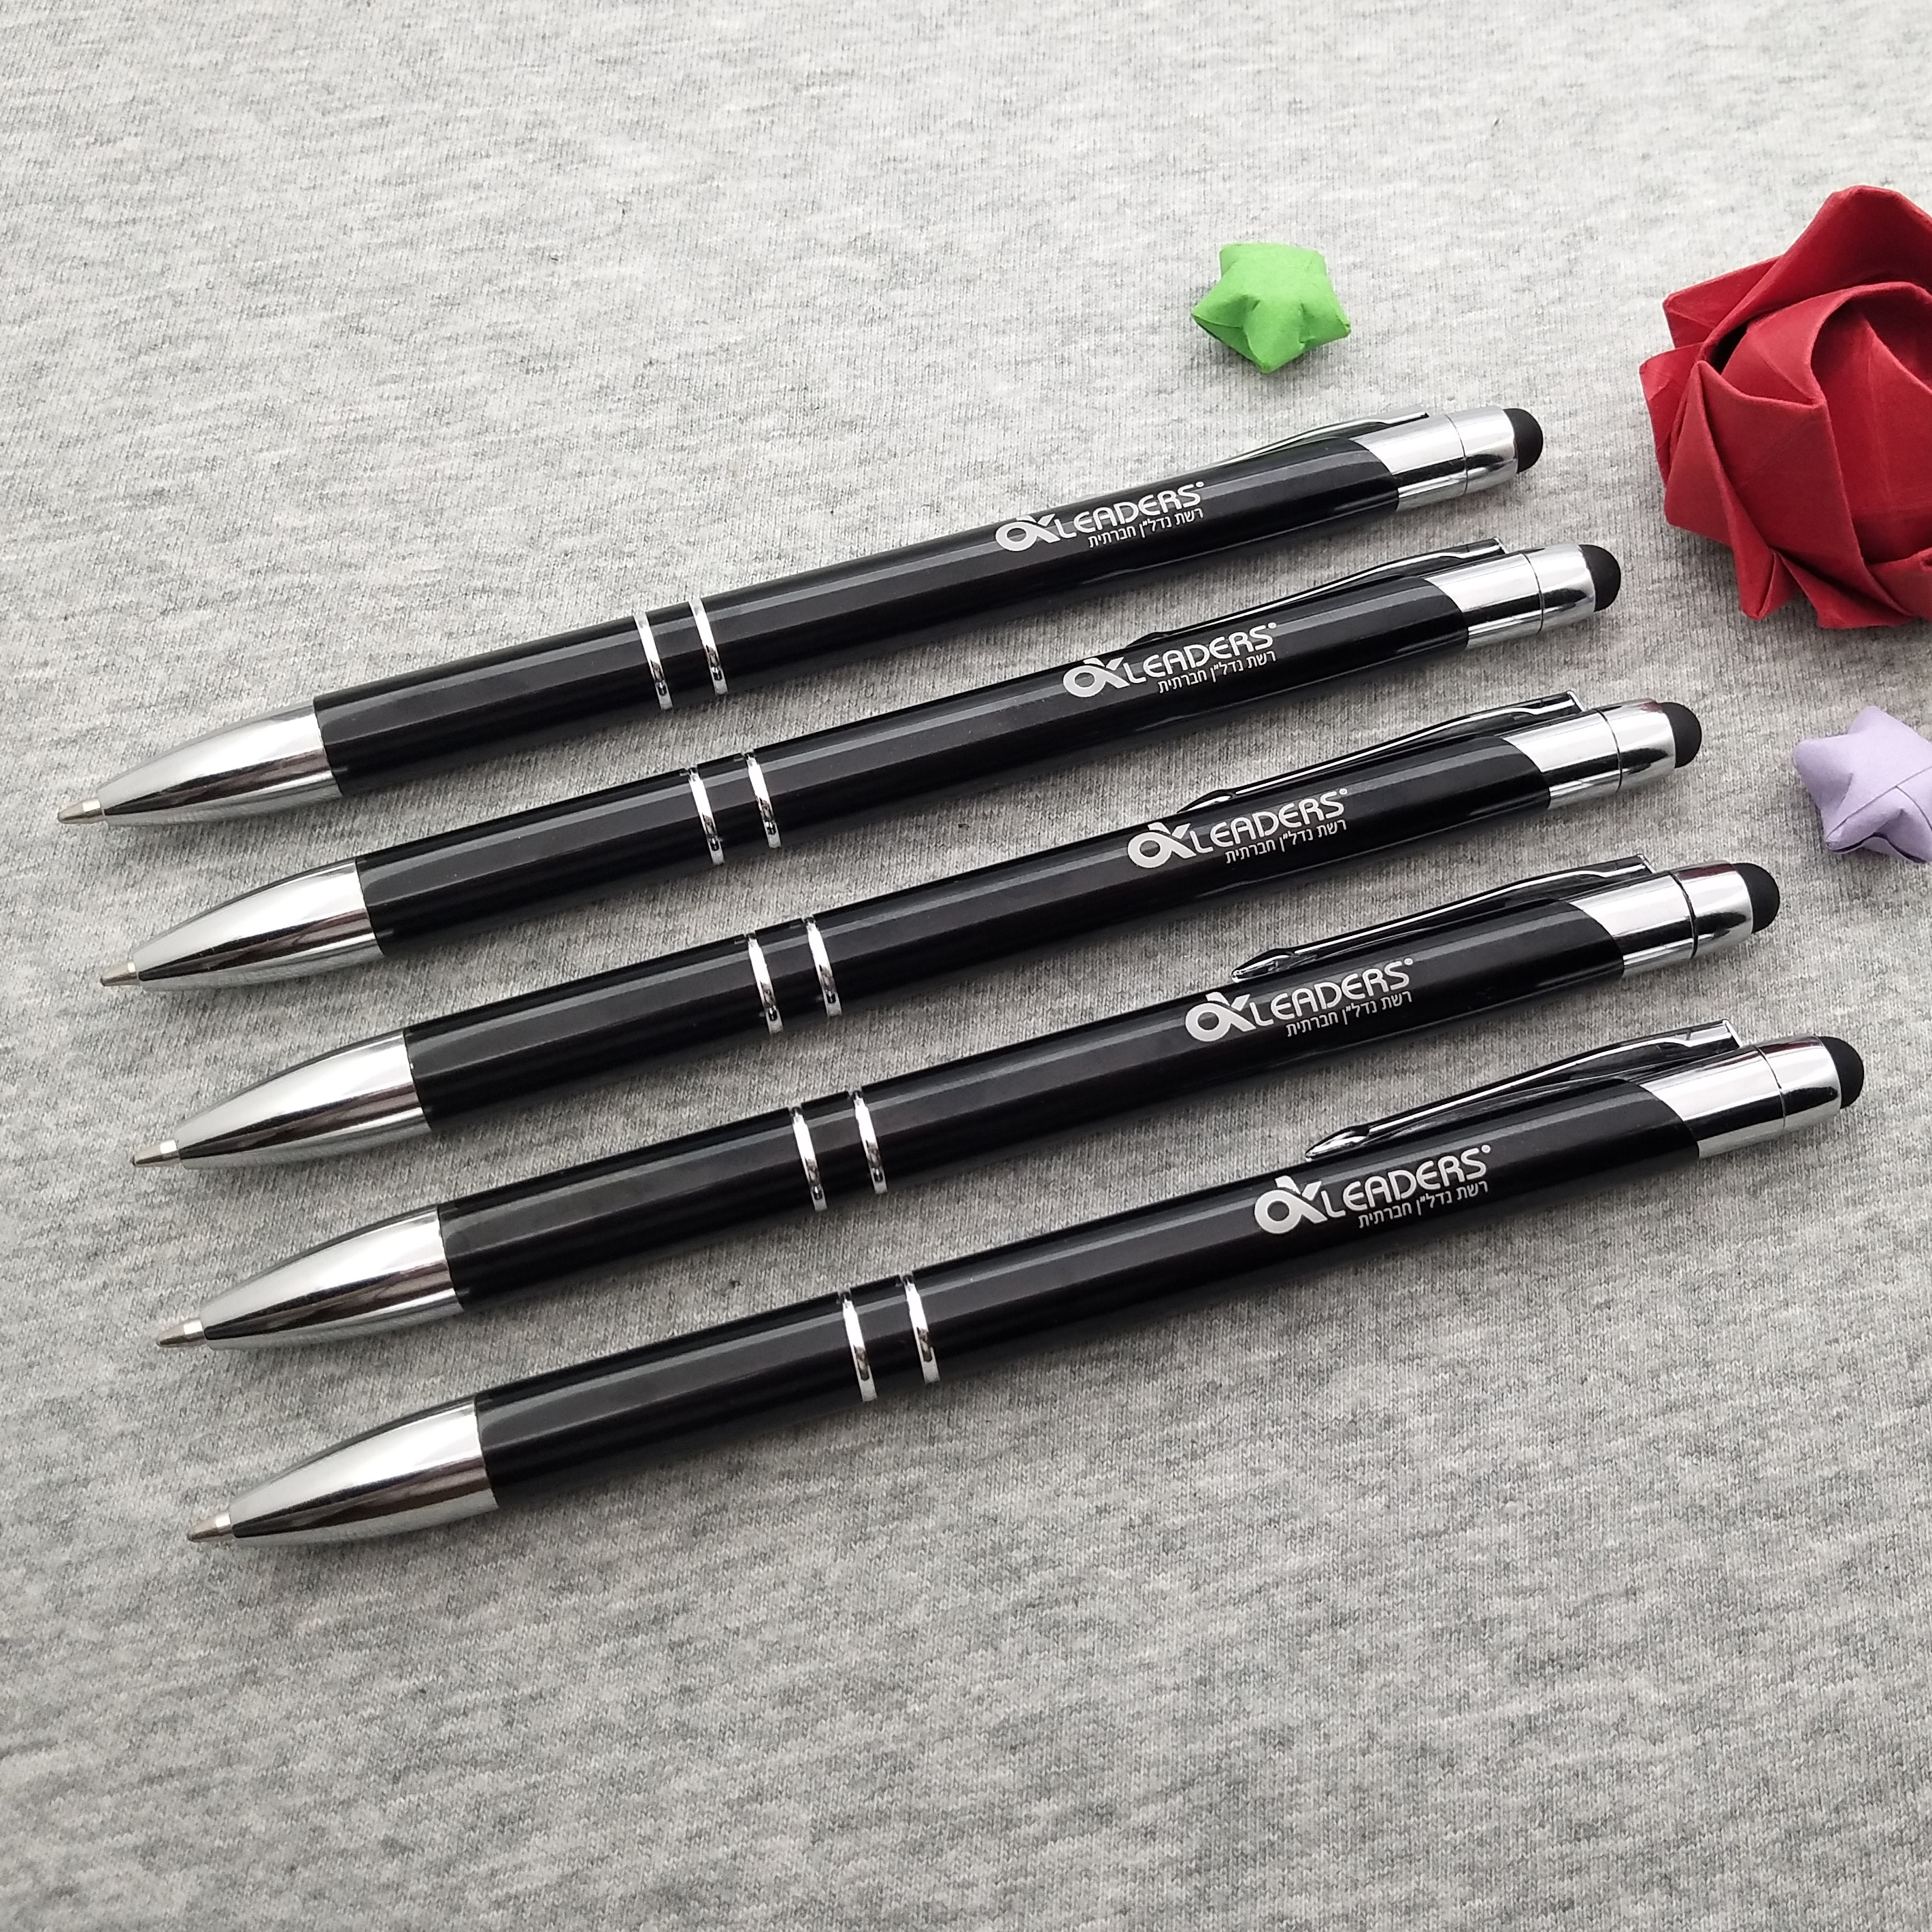 Free Shipping 1000Pc metal Ballpen Pen Touch Pen for company gifts can laser engraving company text/logo/design/website